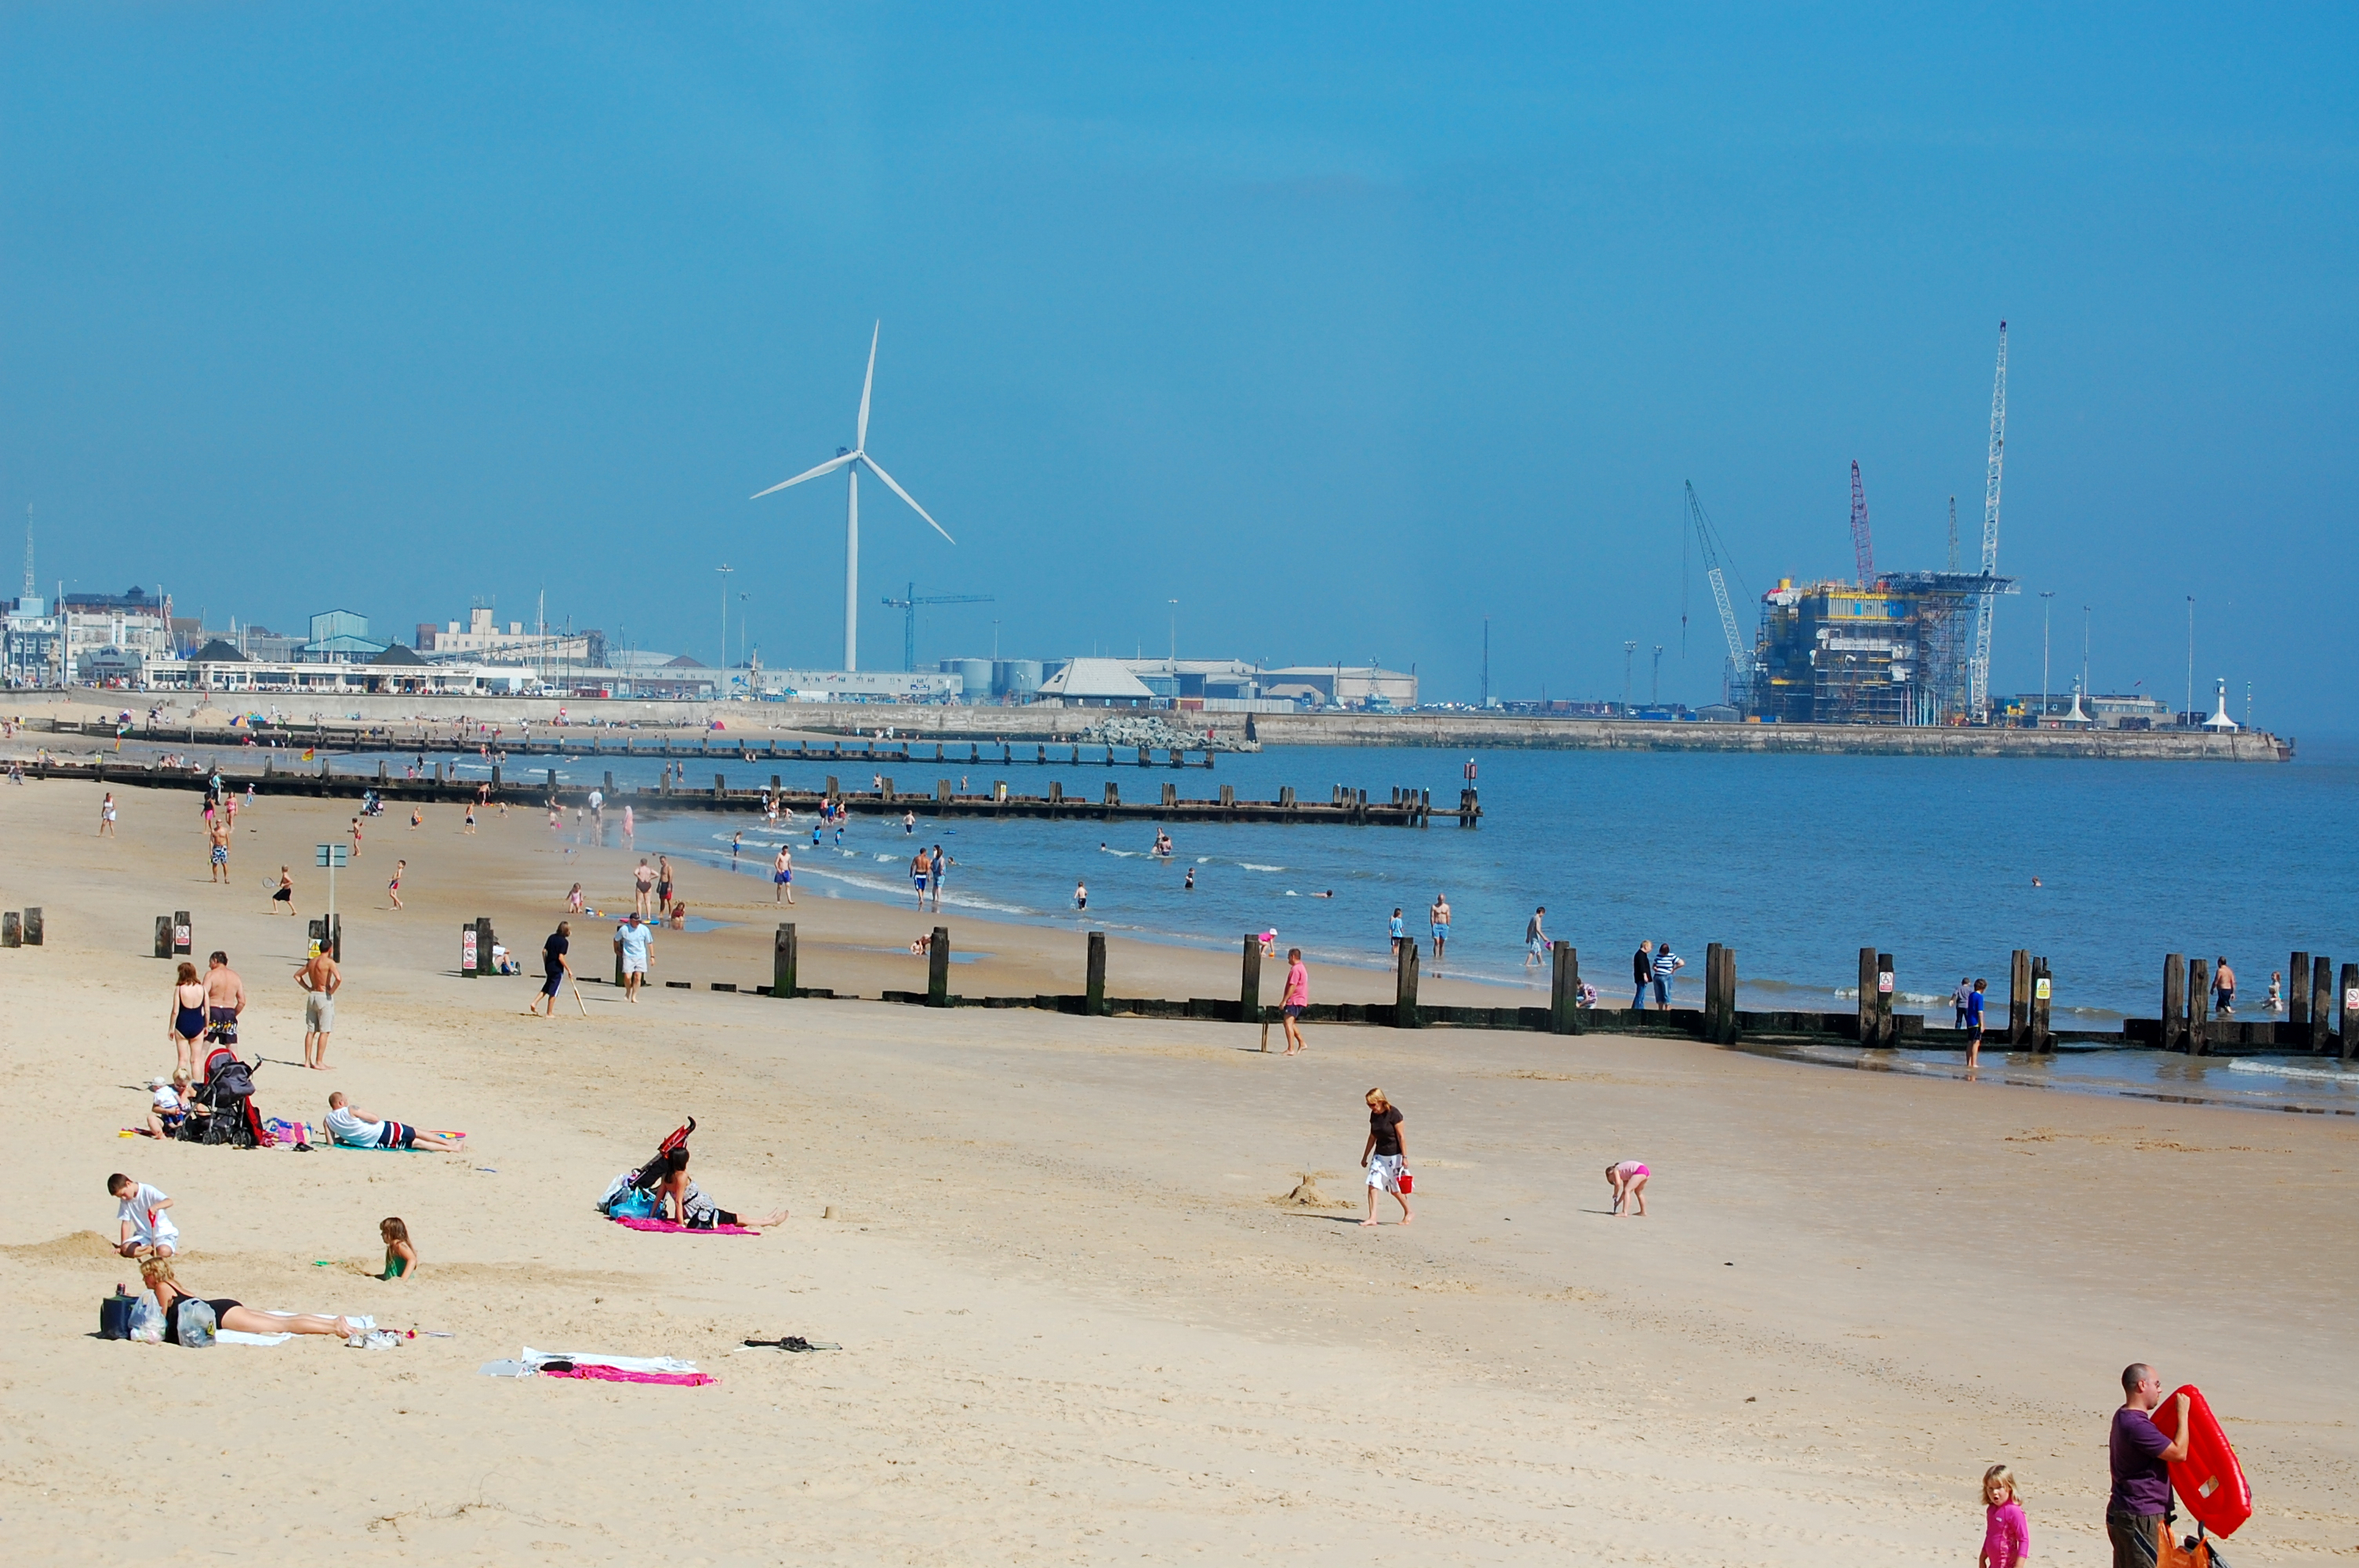 Warm weather boost for small businesses